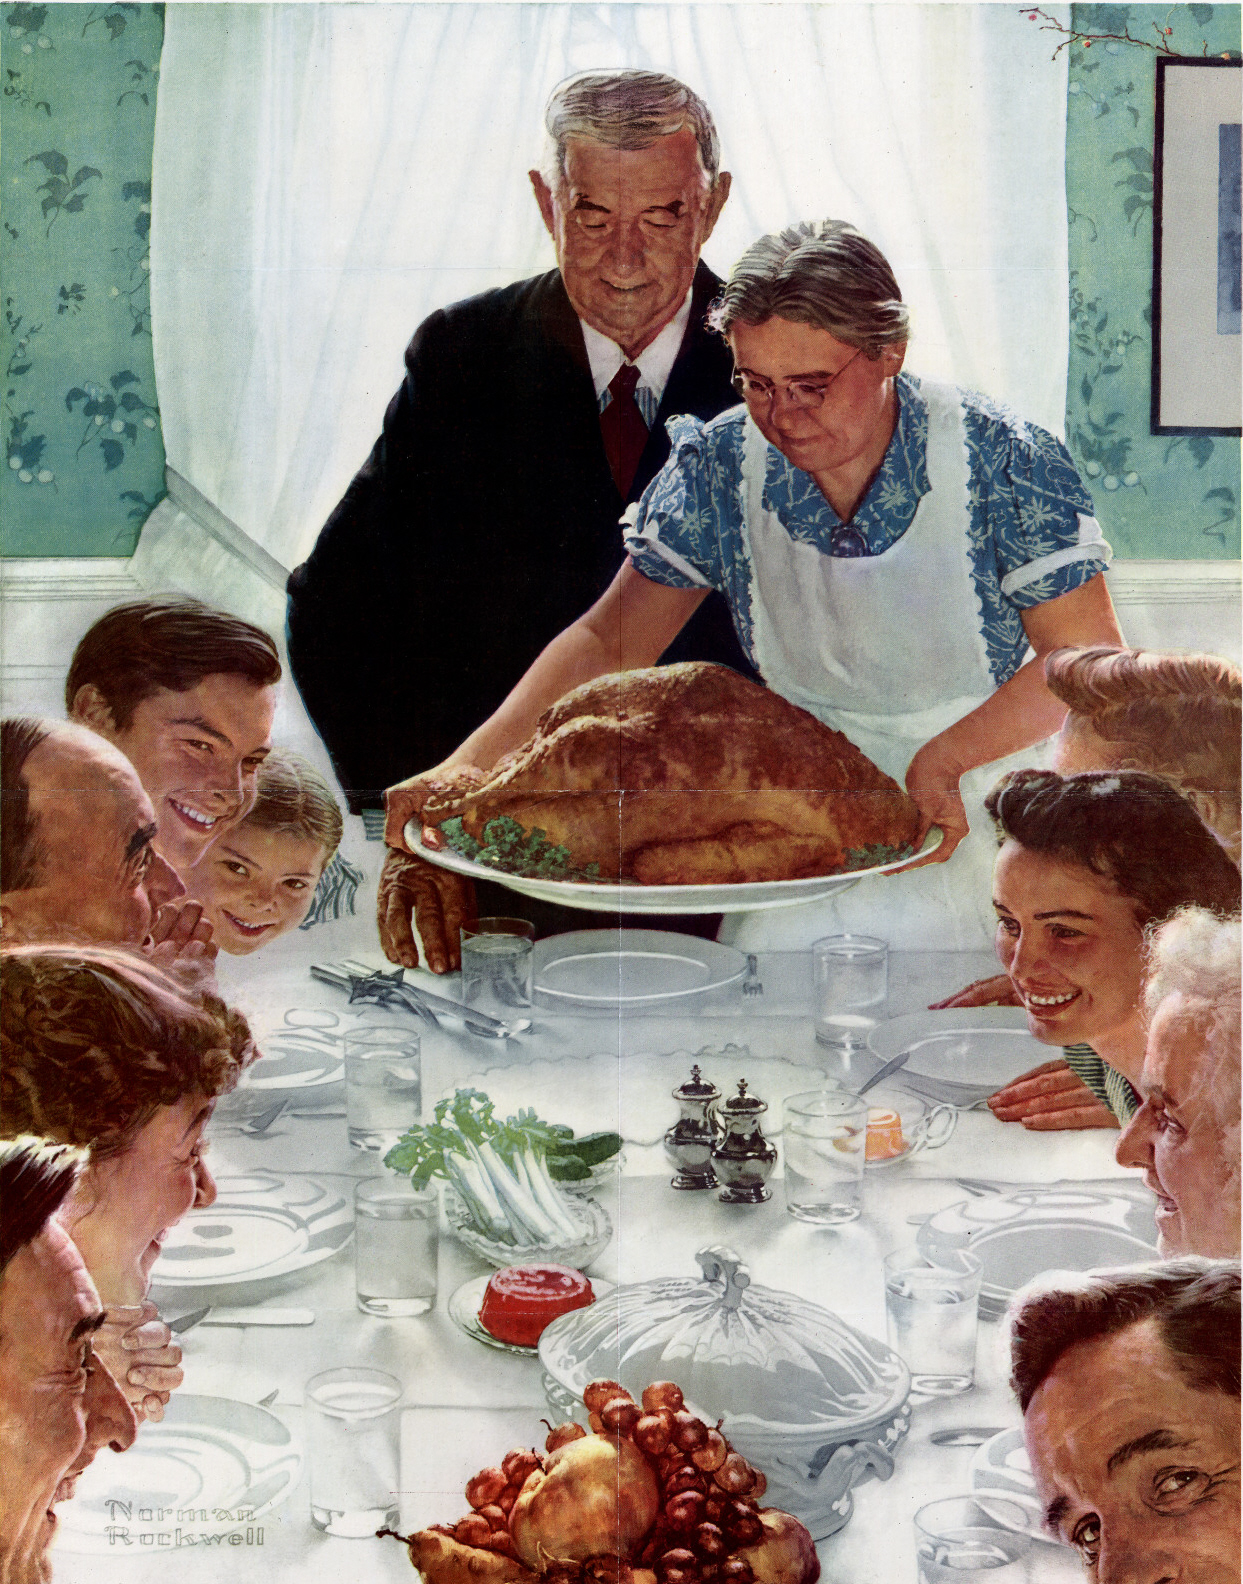 Norman rockwell thanksgiving wallpaper wallpapersafari for Art and appetite american painting culture and cuisine